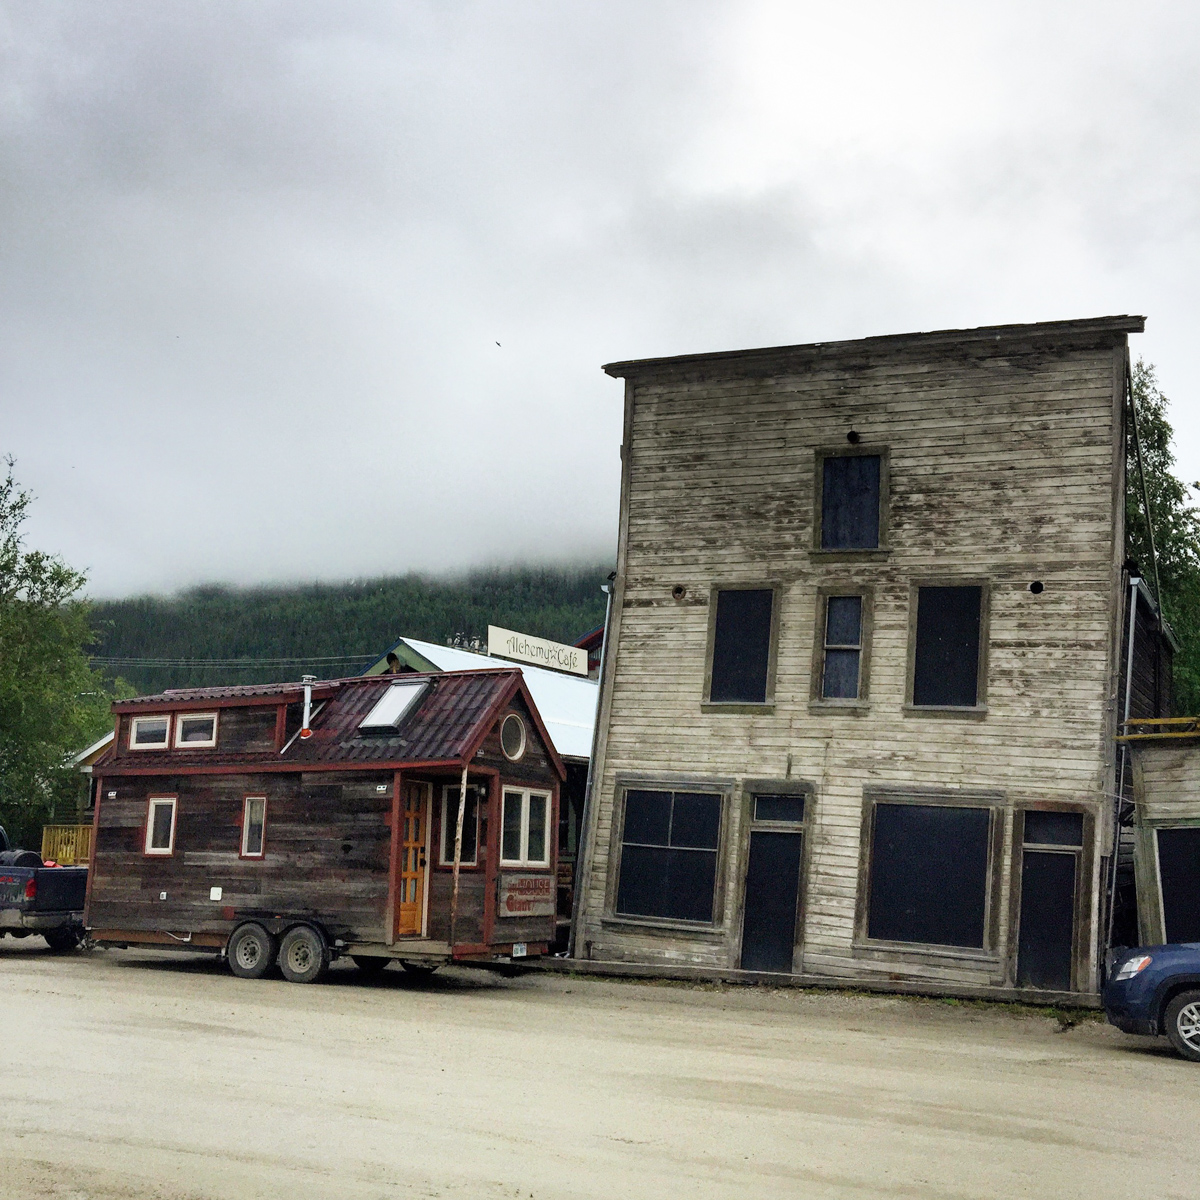 Dawson City, YT: Gold Rush Era & Sour Toe Cocktails